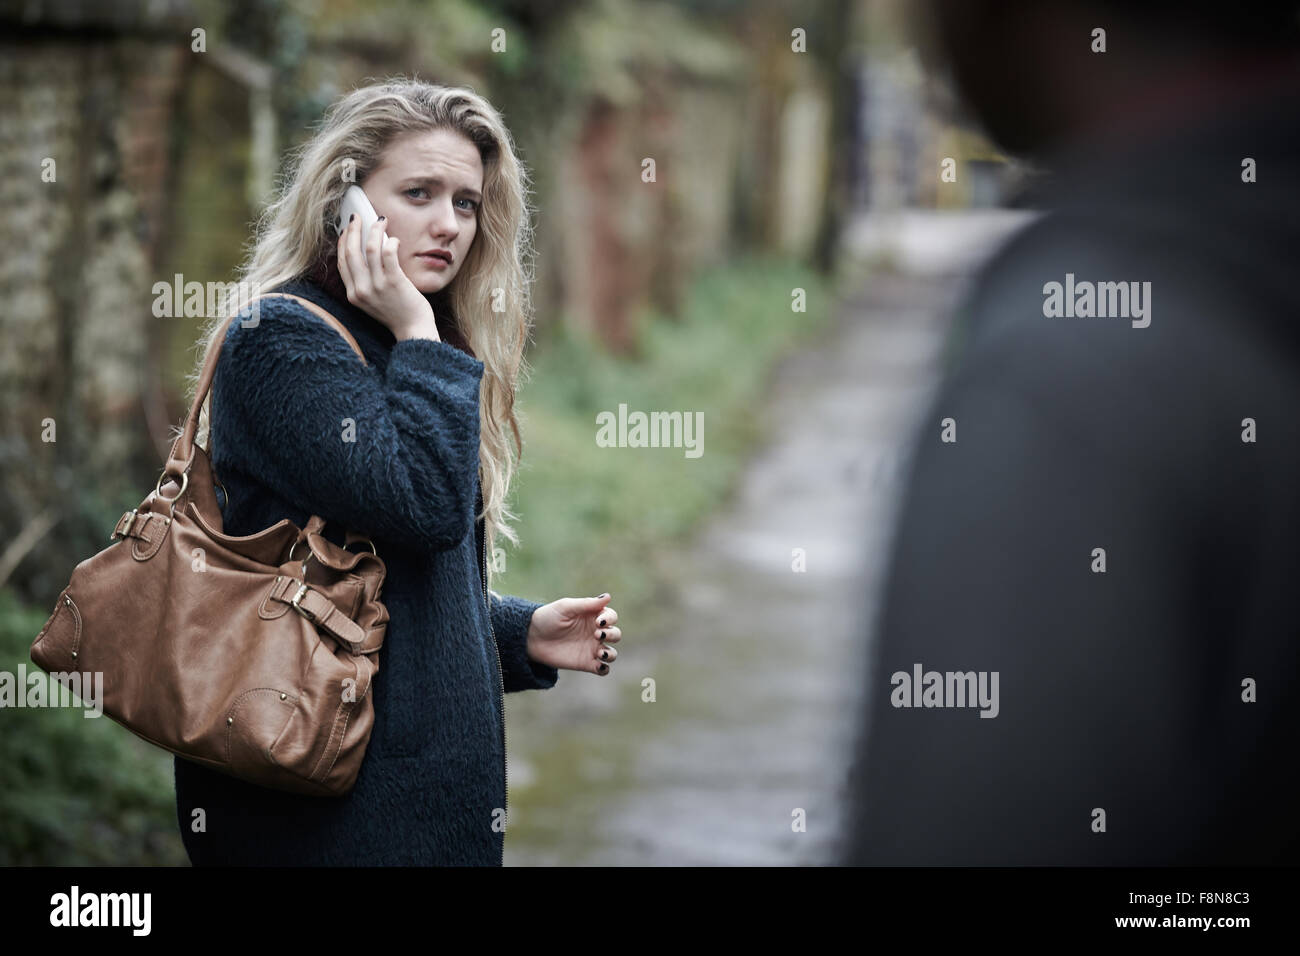 Young Woman Feeling Threatened As She Walks Home - Stock Image